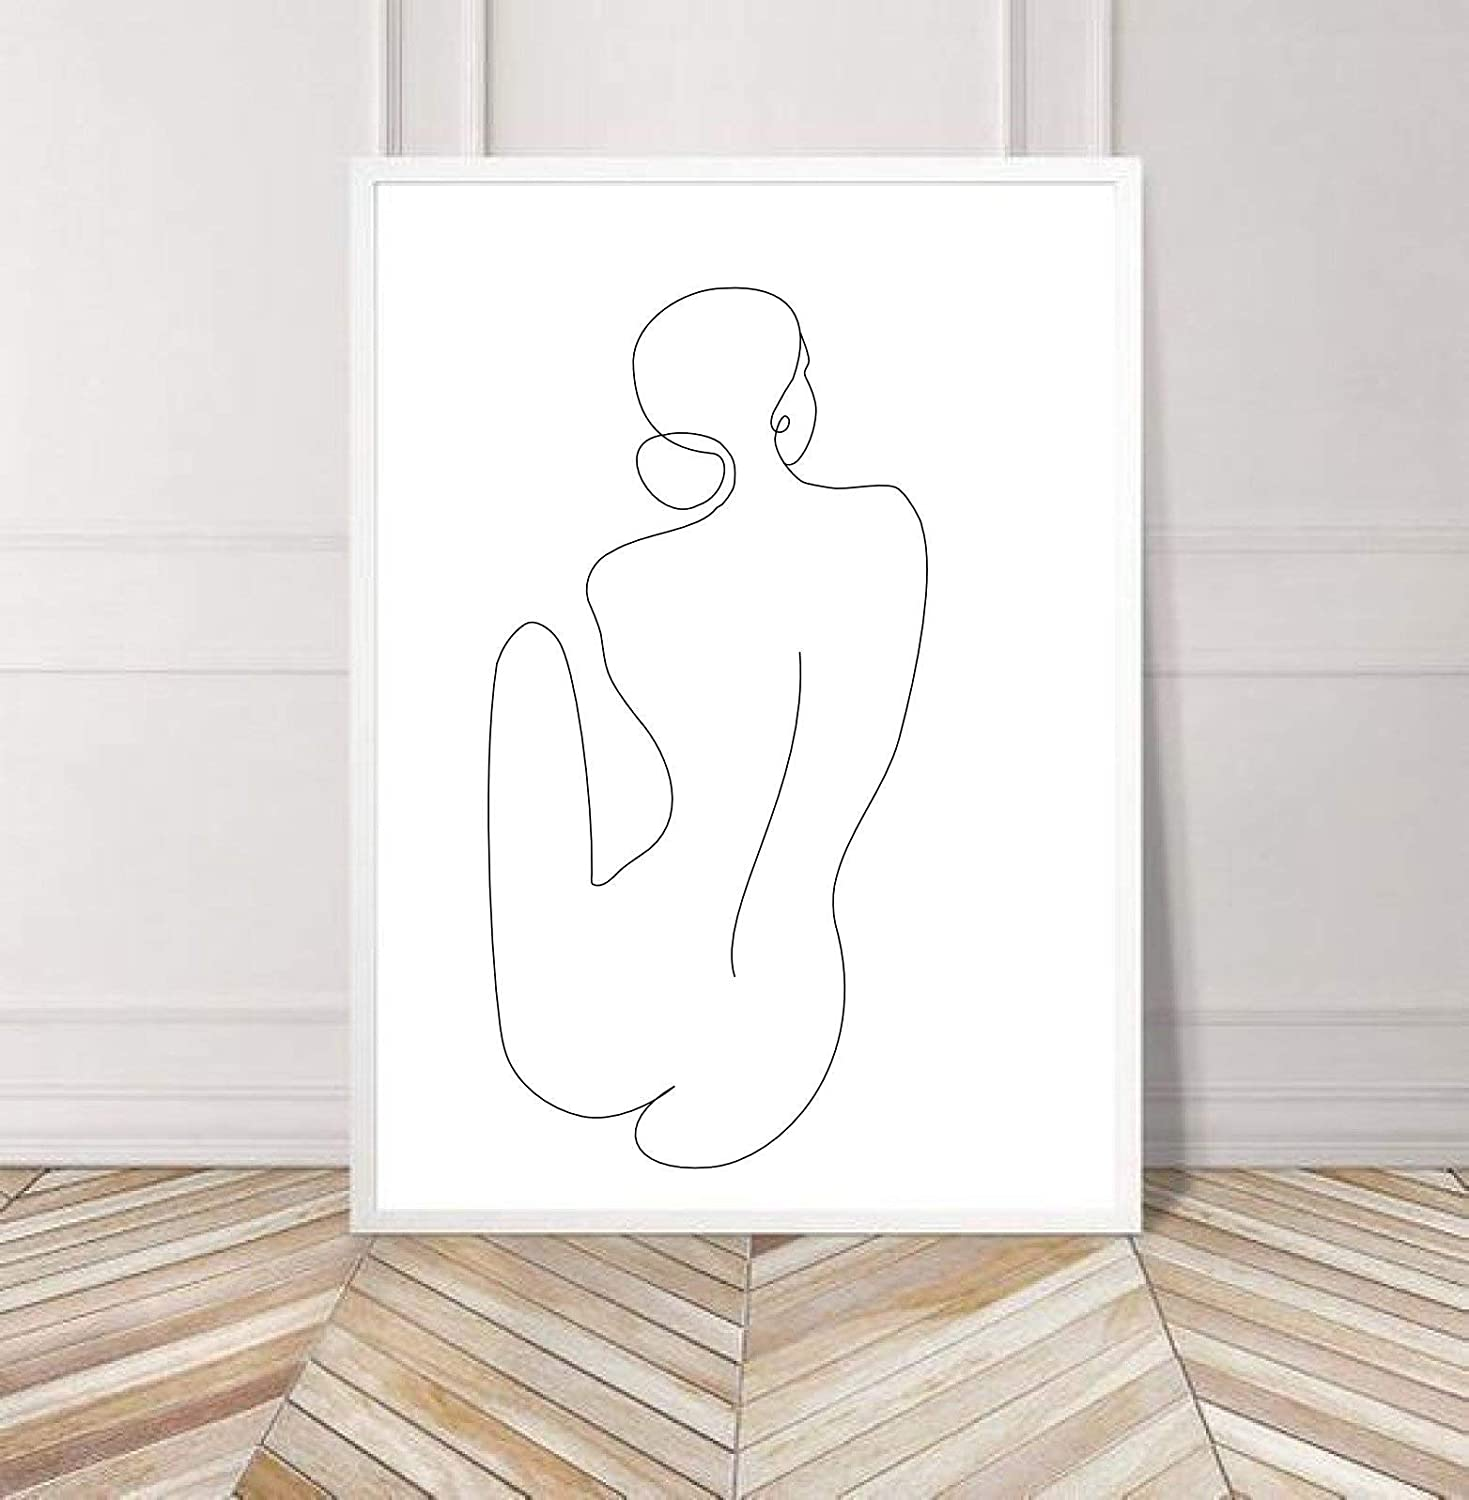 Amazon Com Arvier Woman Body Line Art Naked Woman Sketch Line Art Wall Body Sketch Printable Female Drawing Feminine Poster Nude Body One Line Drawing Framed Wall Art Everything Else